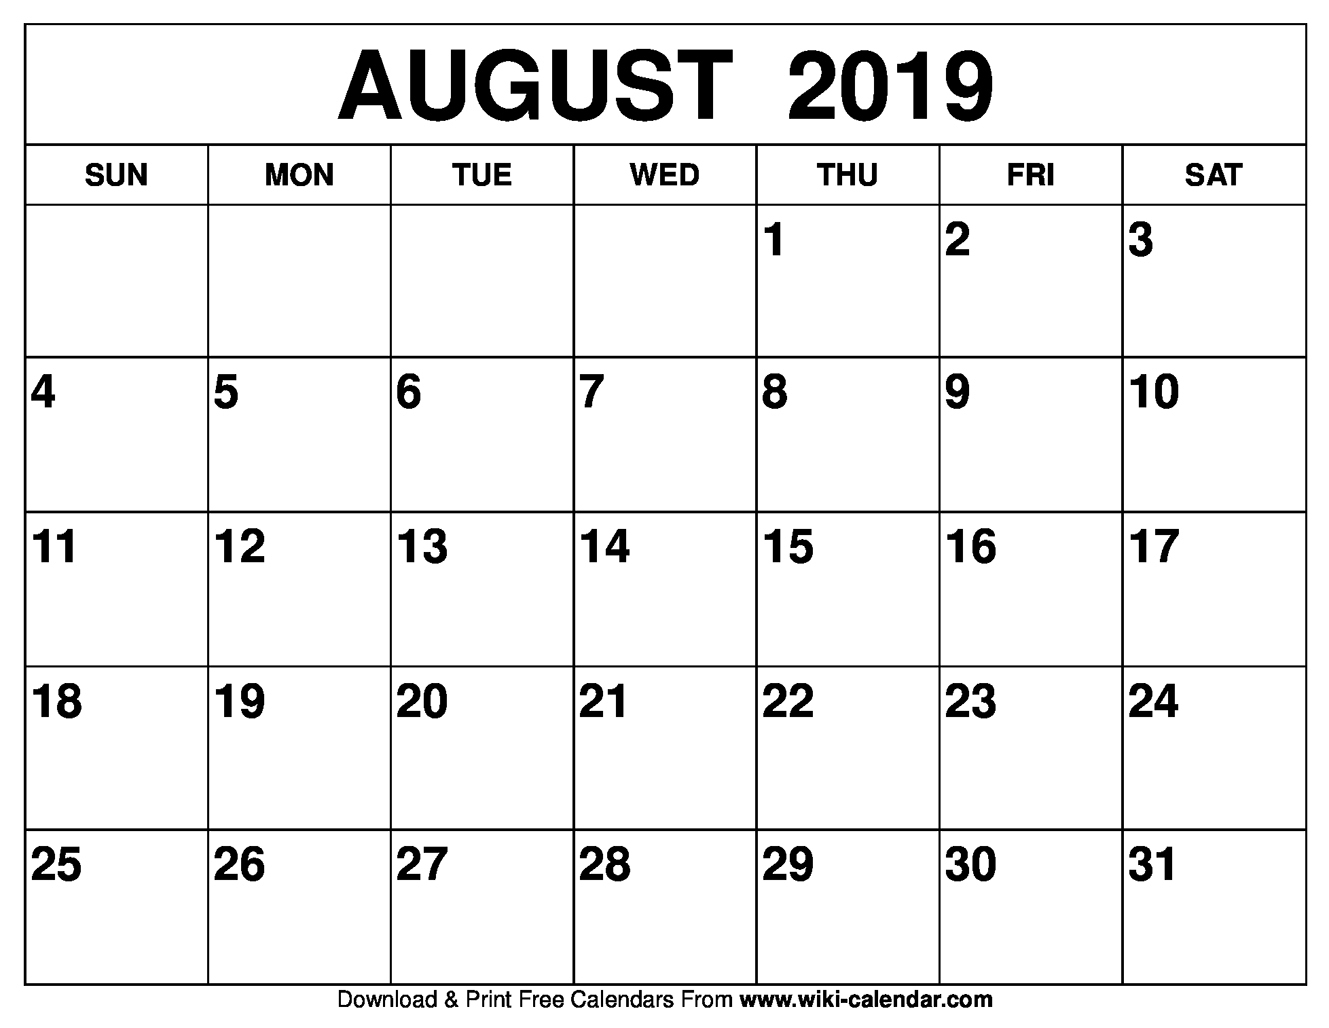 Bravo June July August 2019 Calendar On One Page * Calendar Template for Printable July Through August On One Page Calendars